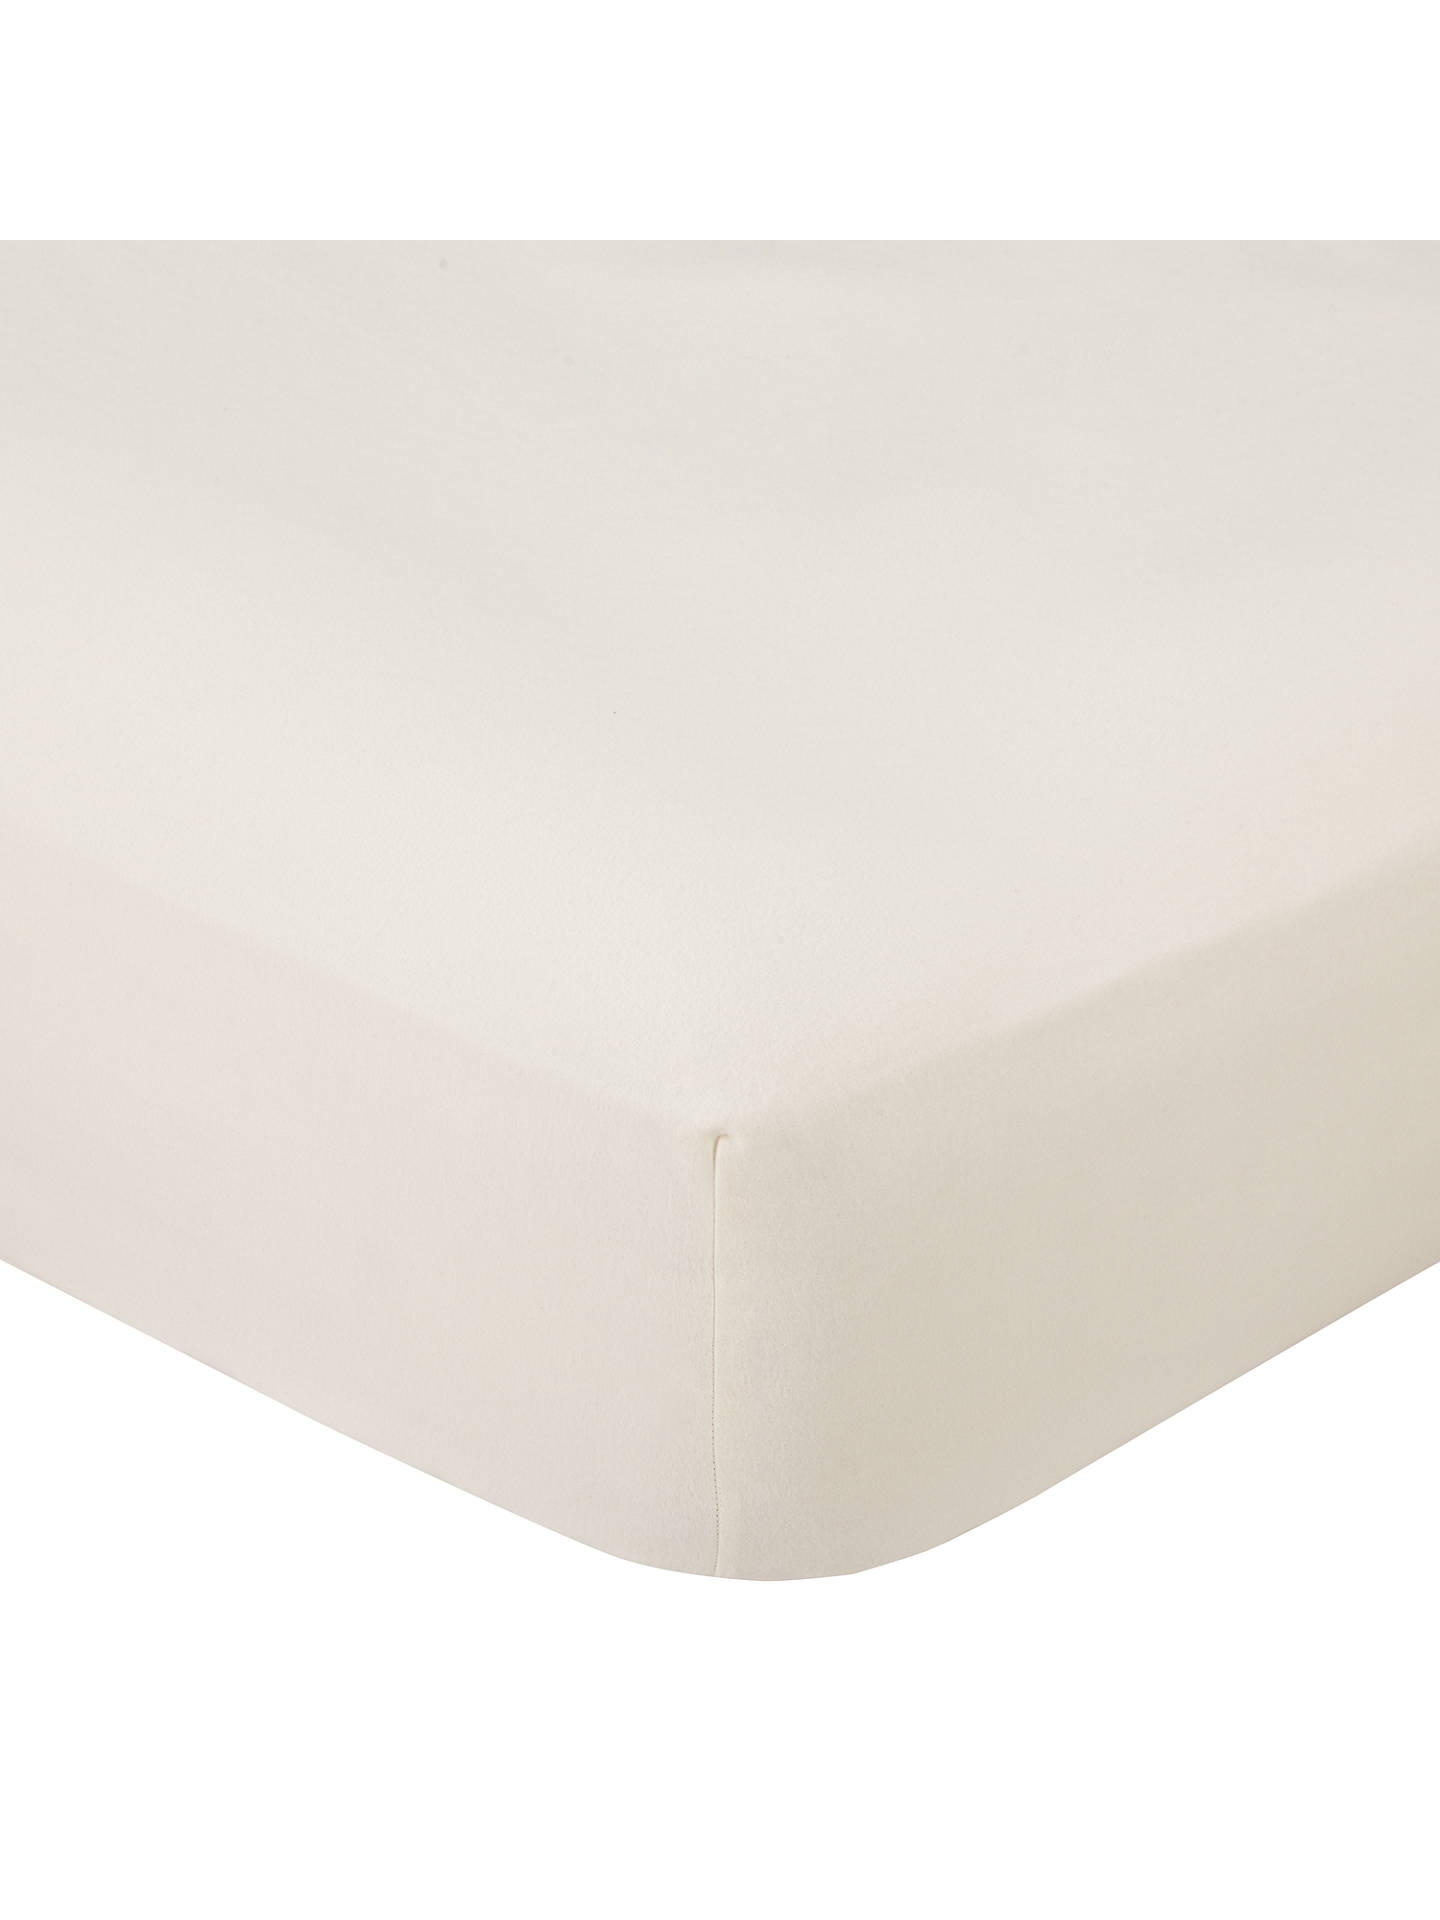 Buy John Lewis & Partners Warm & Cosy Brushed Cotton Fitted Sheet, Single, Cream Online at johnlewis.com